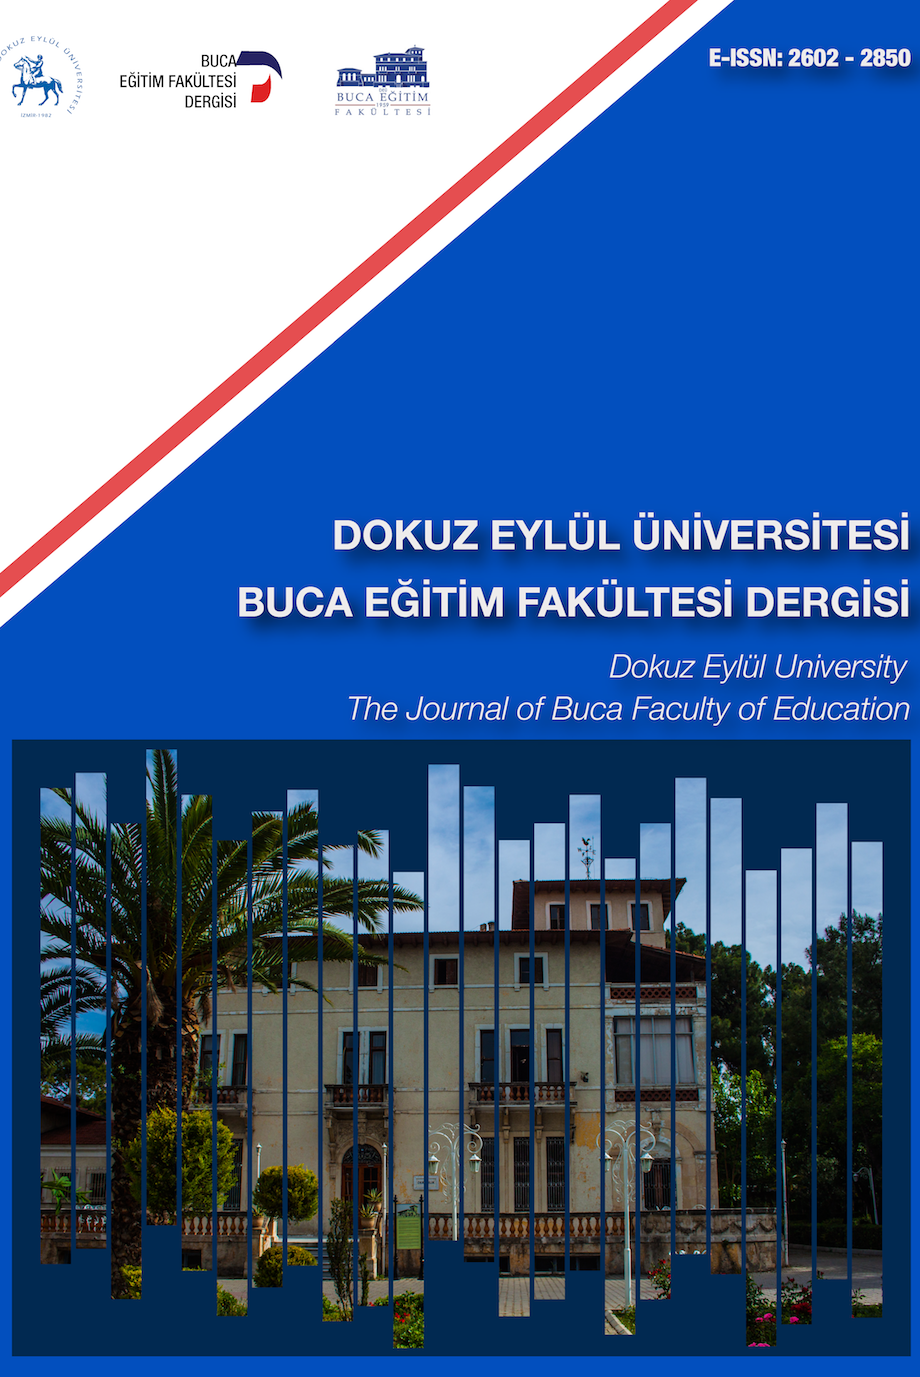 Buca Faculty of Education Journal